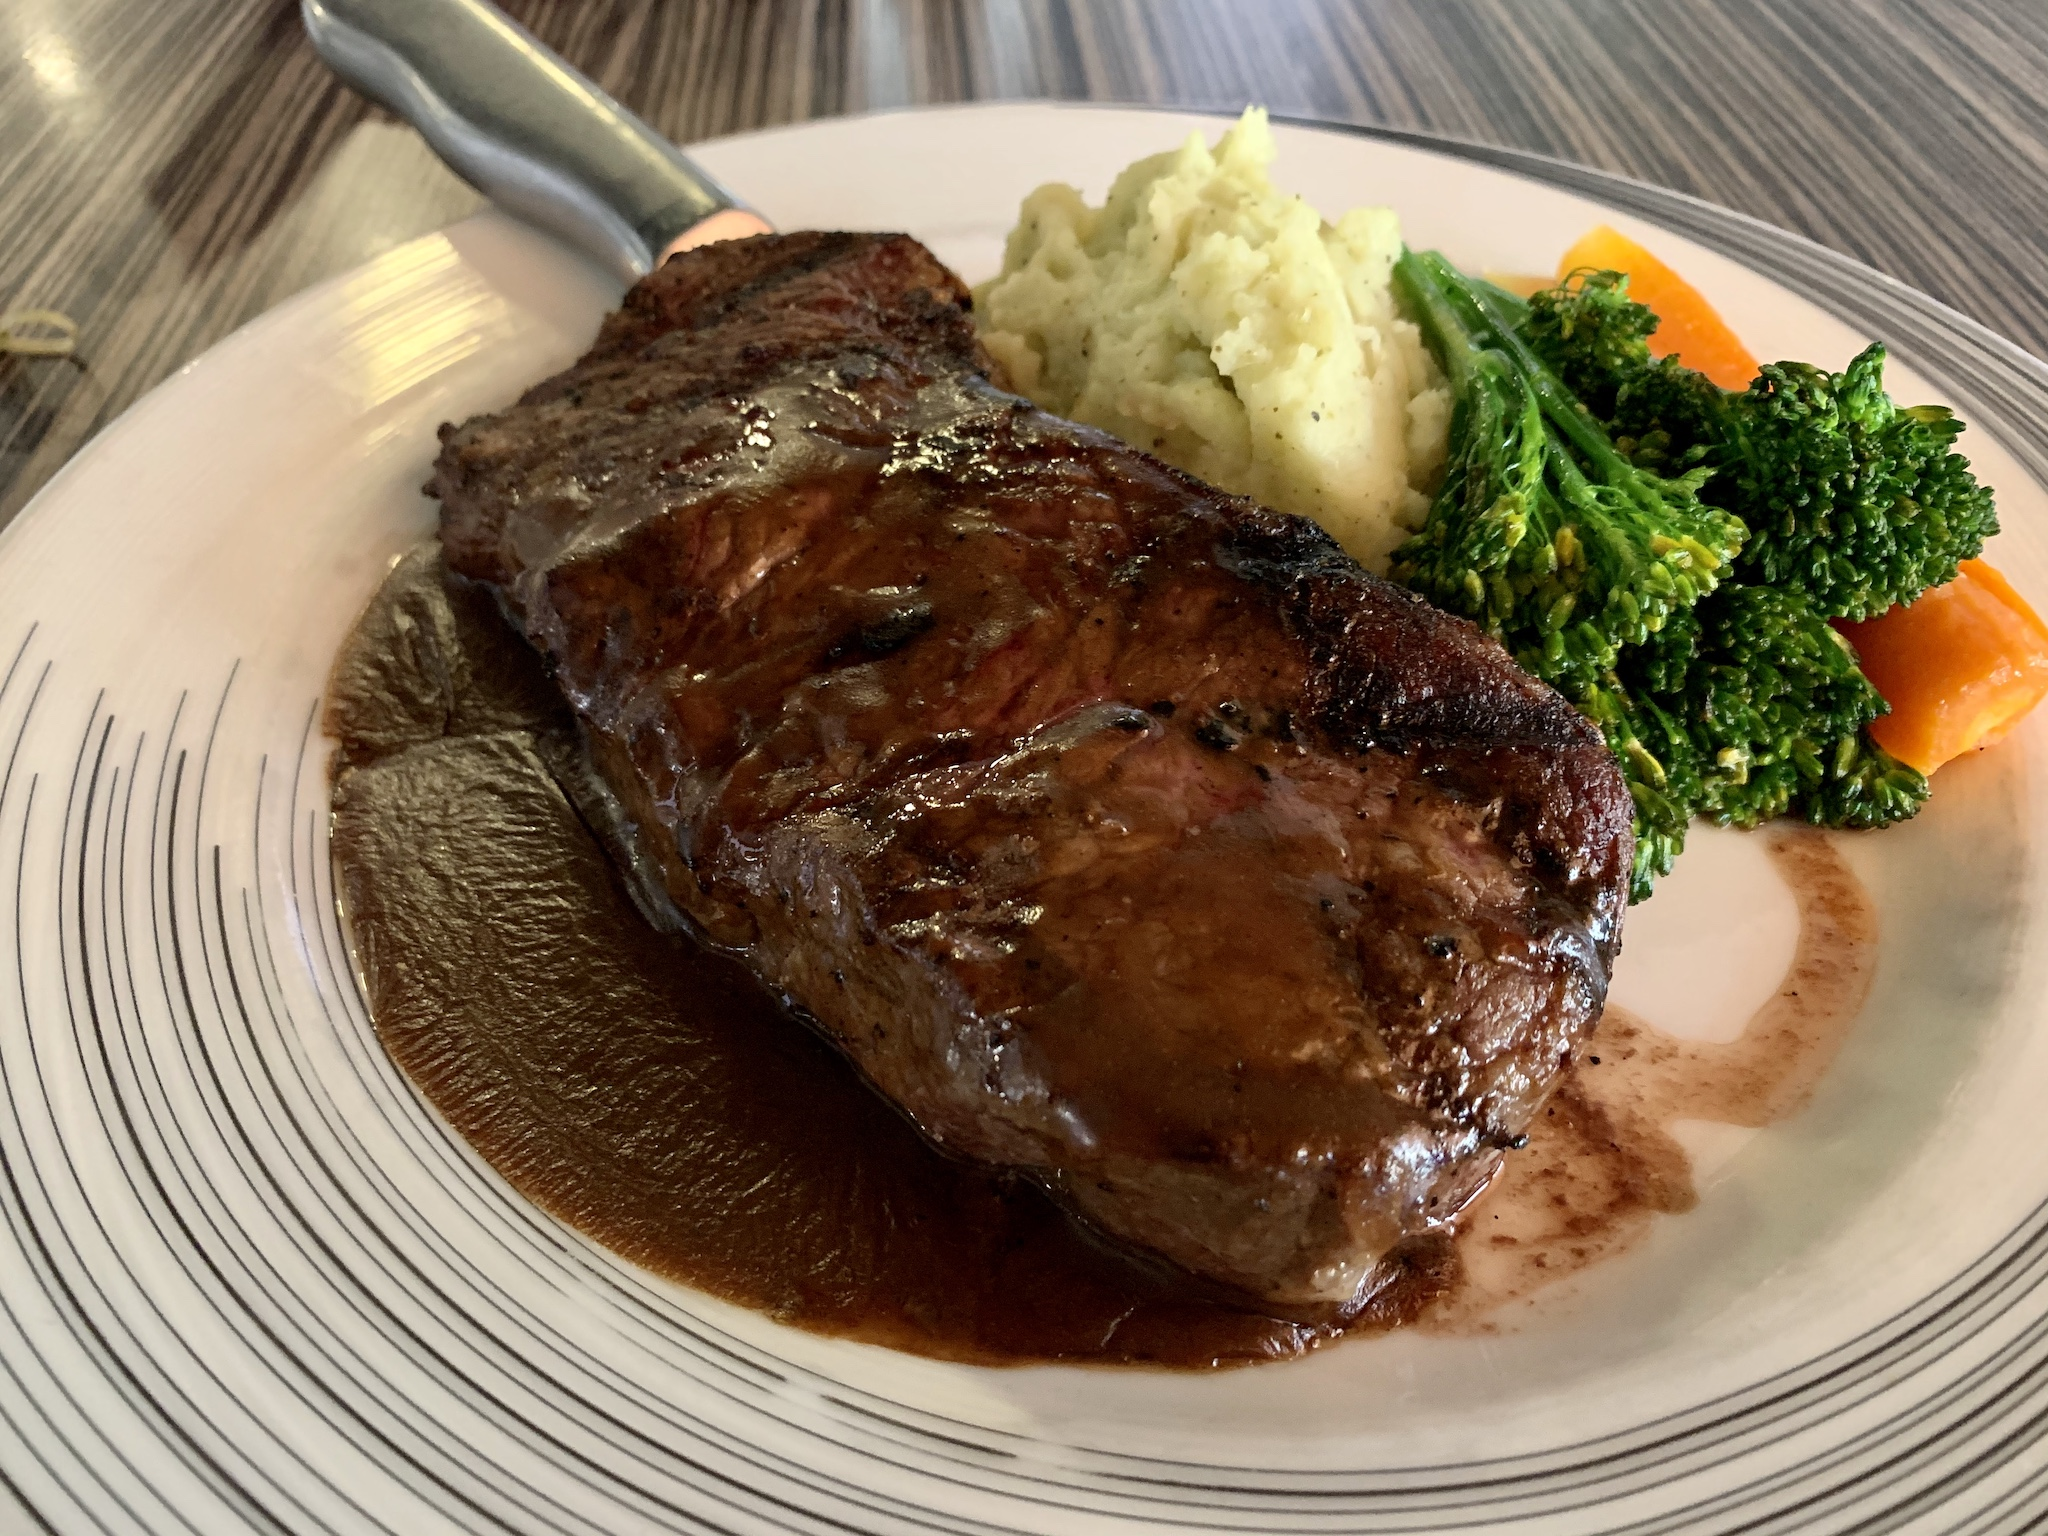 Compass Grille - 10 Oz. Grilled New York Strip with roasted garlic mashed potatoes, chef's choice of vegetables and topped with a demi glaze